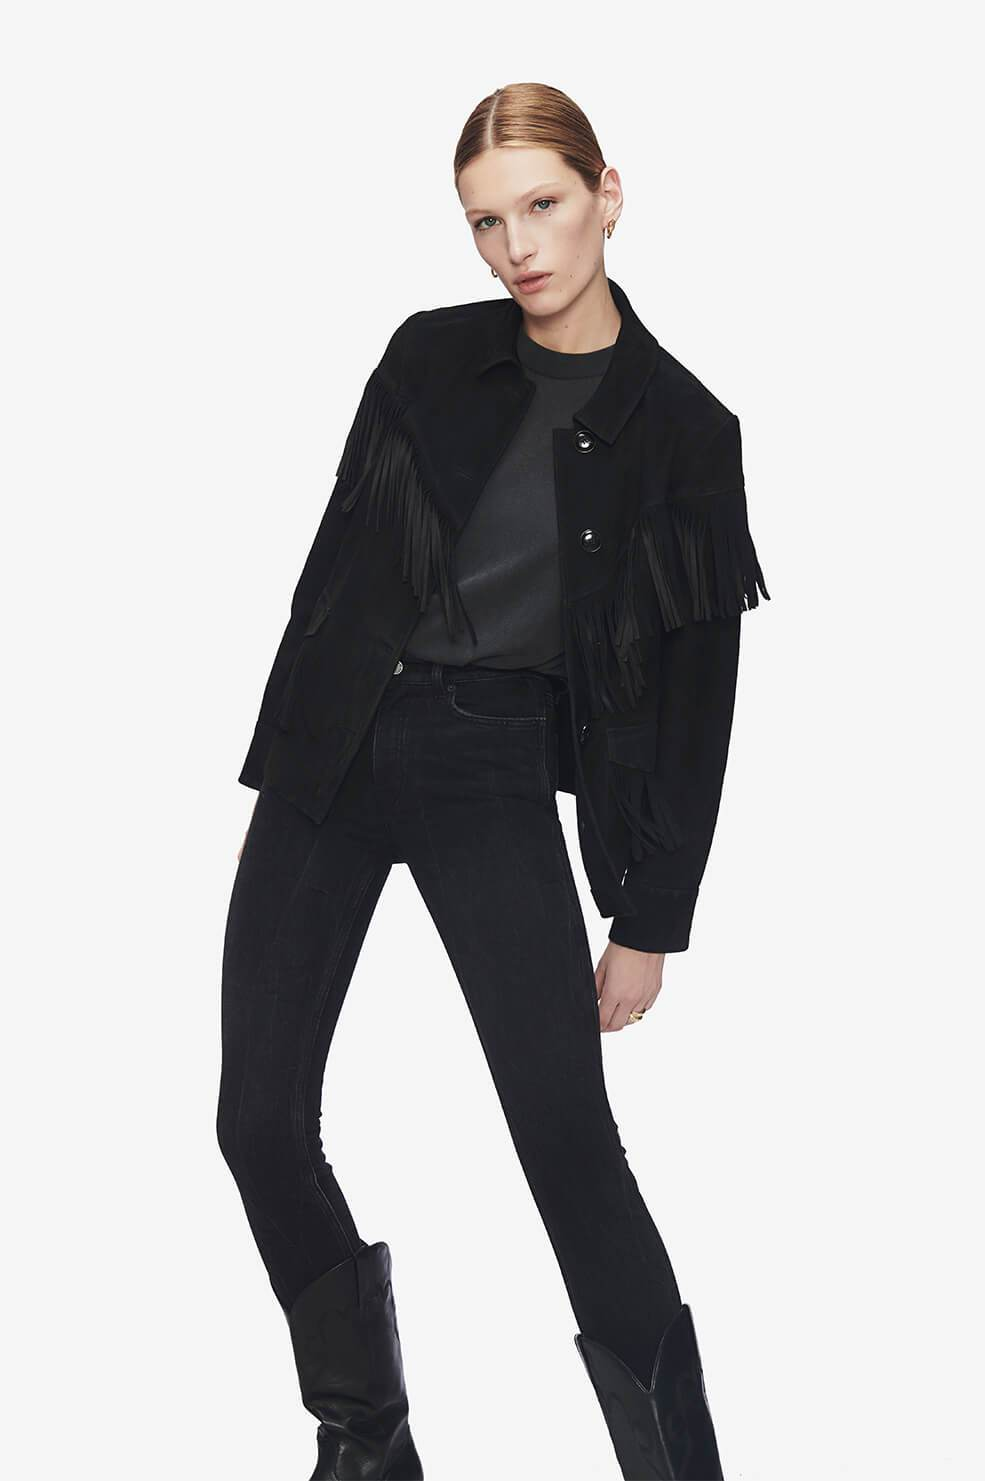 ANINE BING Jamison Jacket - Black